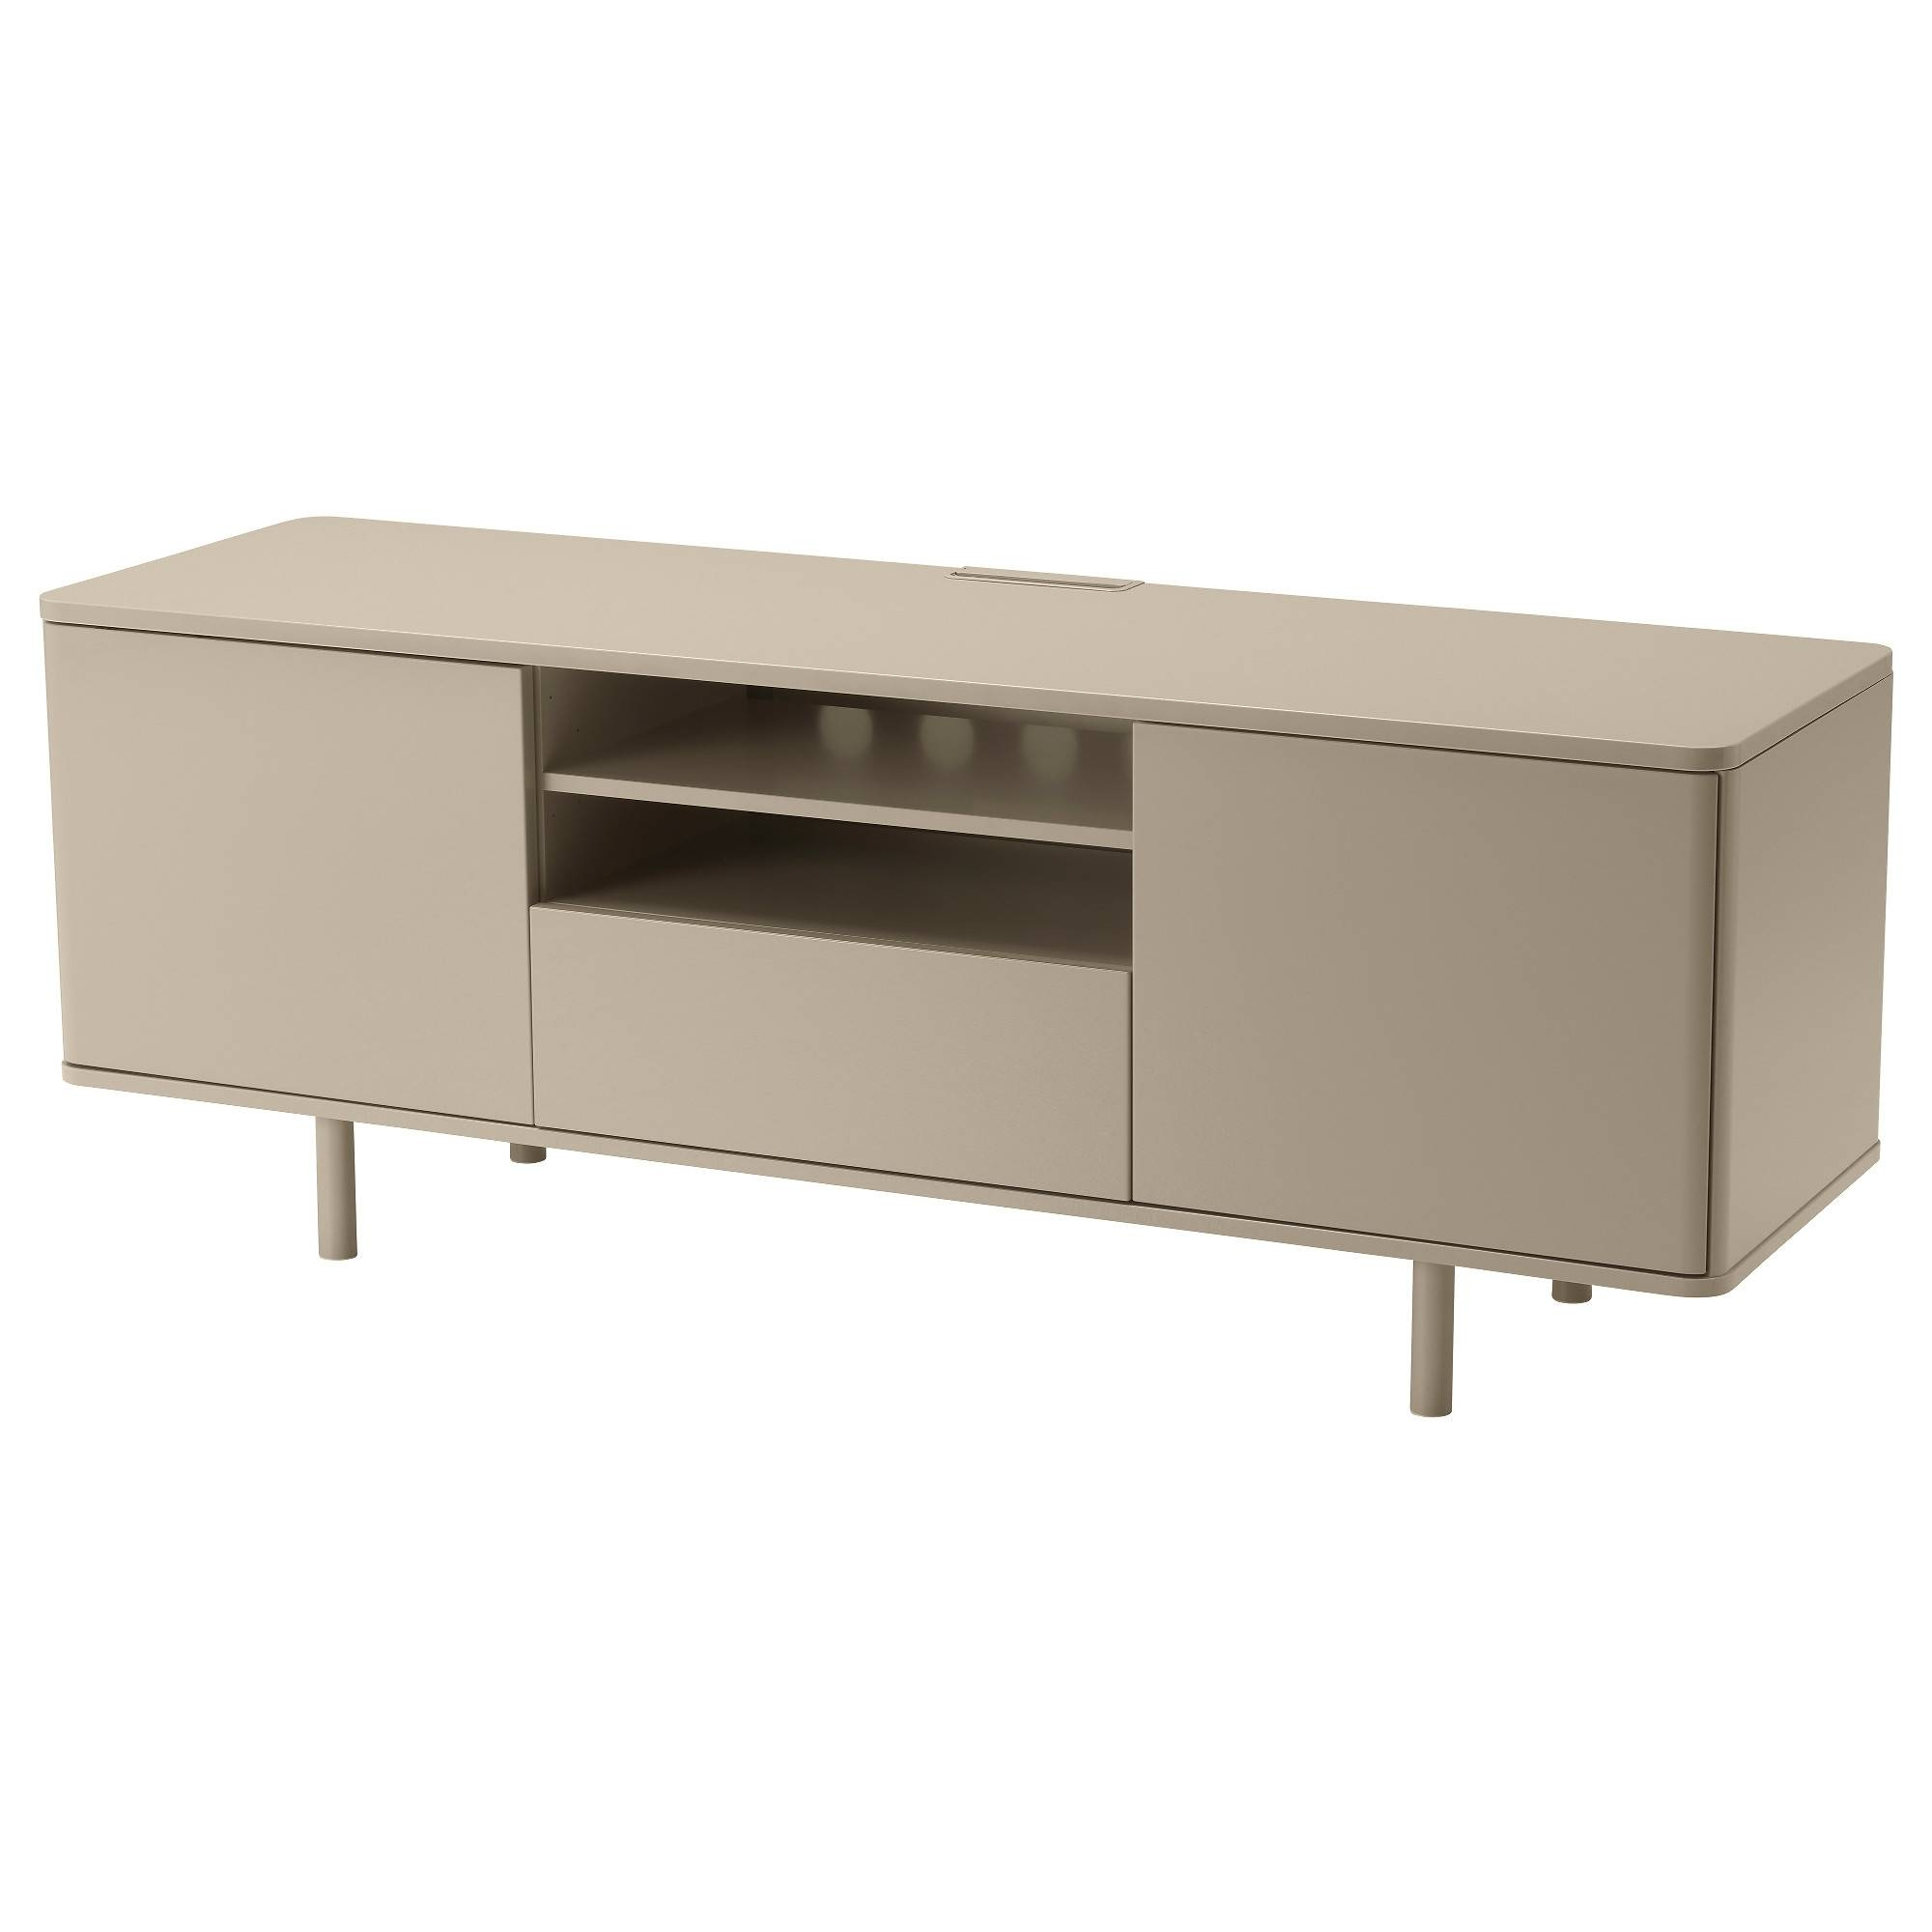 Mostorp Tv Bench Beige 159X46 Cm - Ikea throughout 60 Cm High Tv Stand (Image 8 of 15)